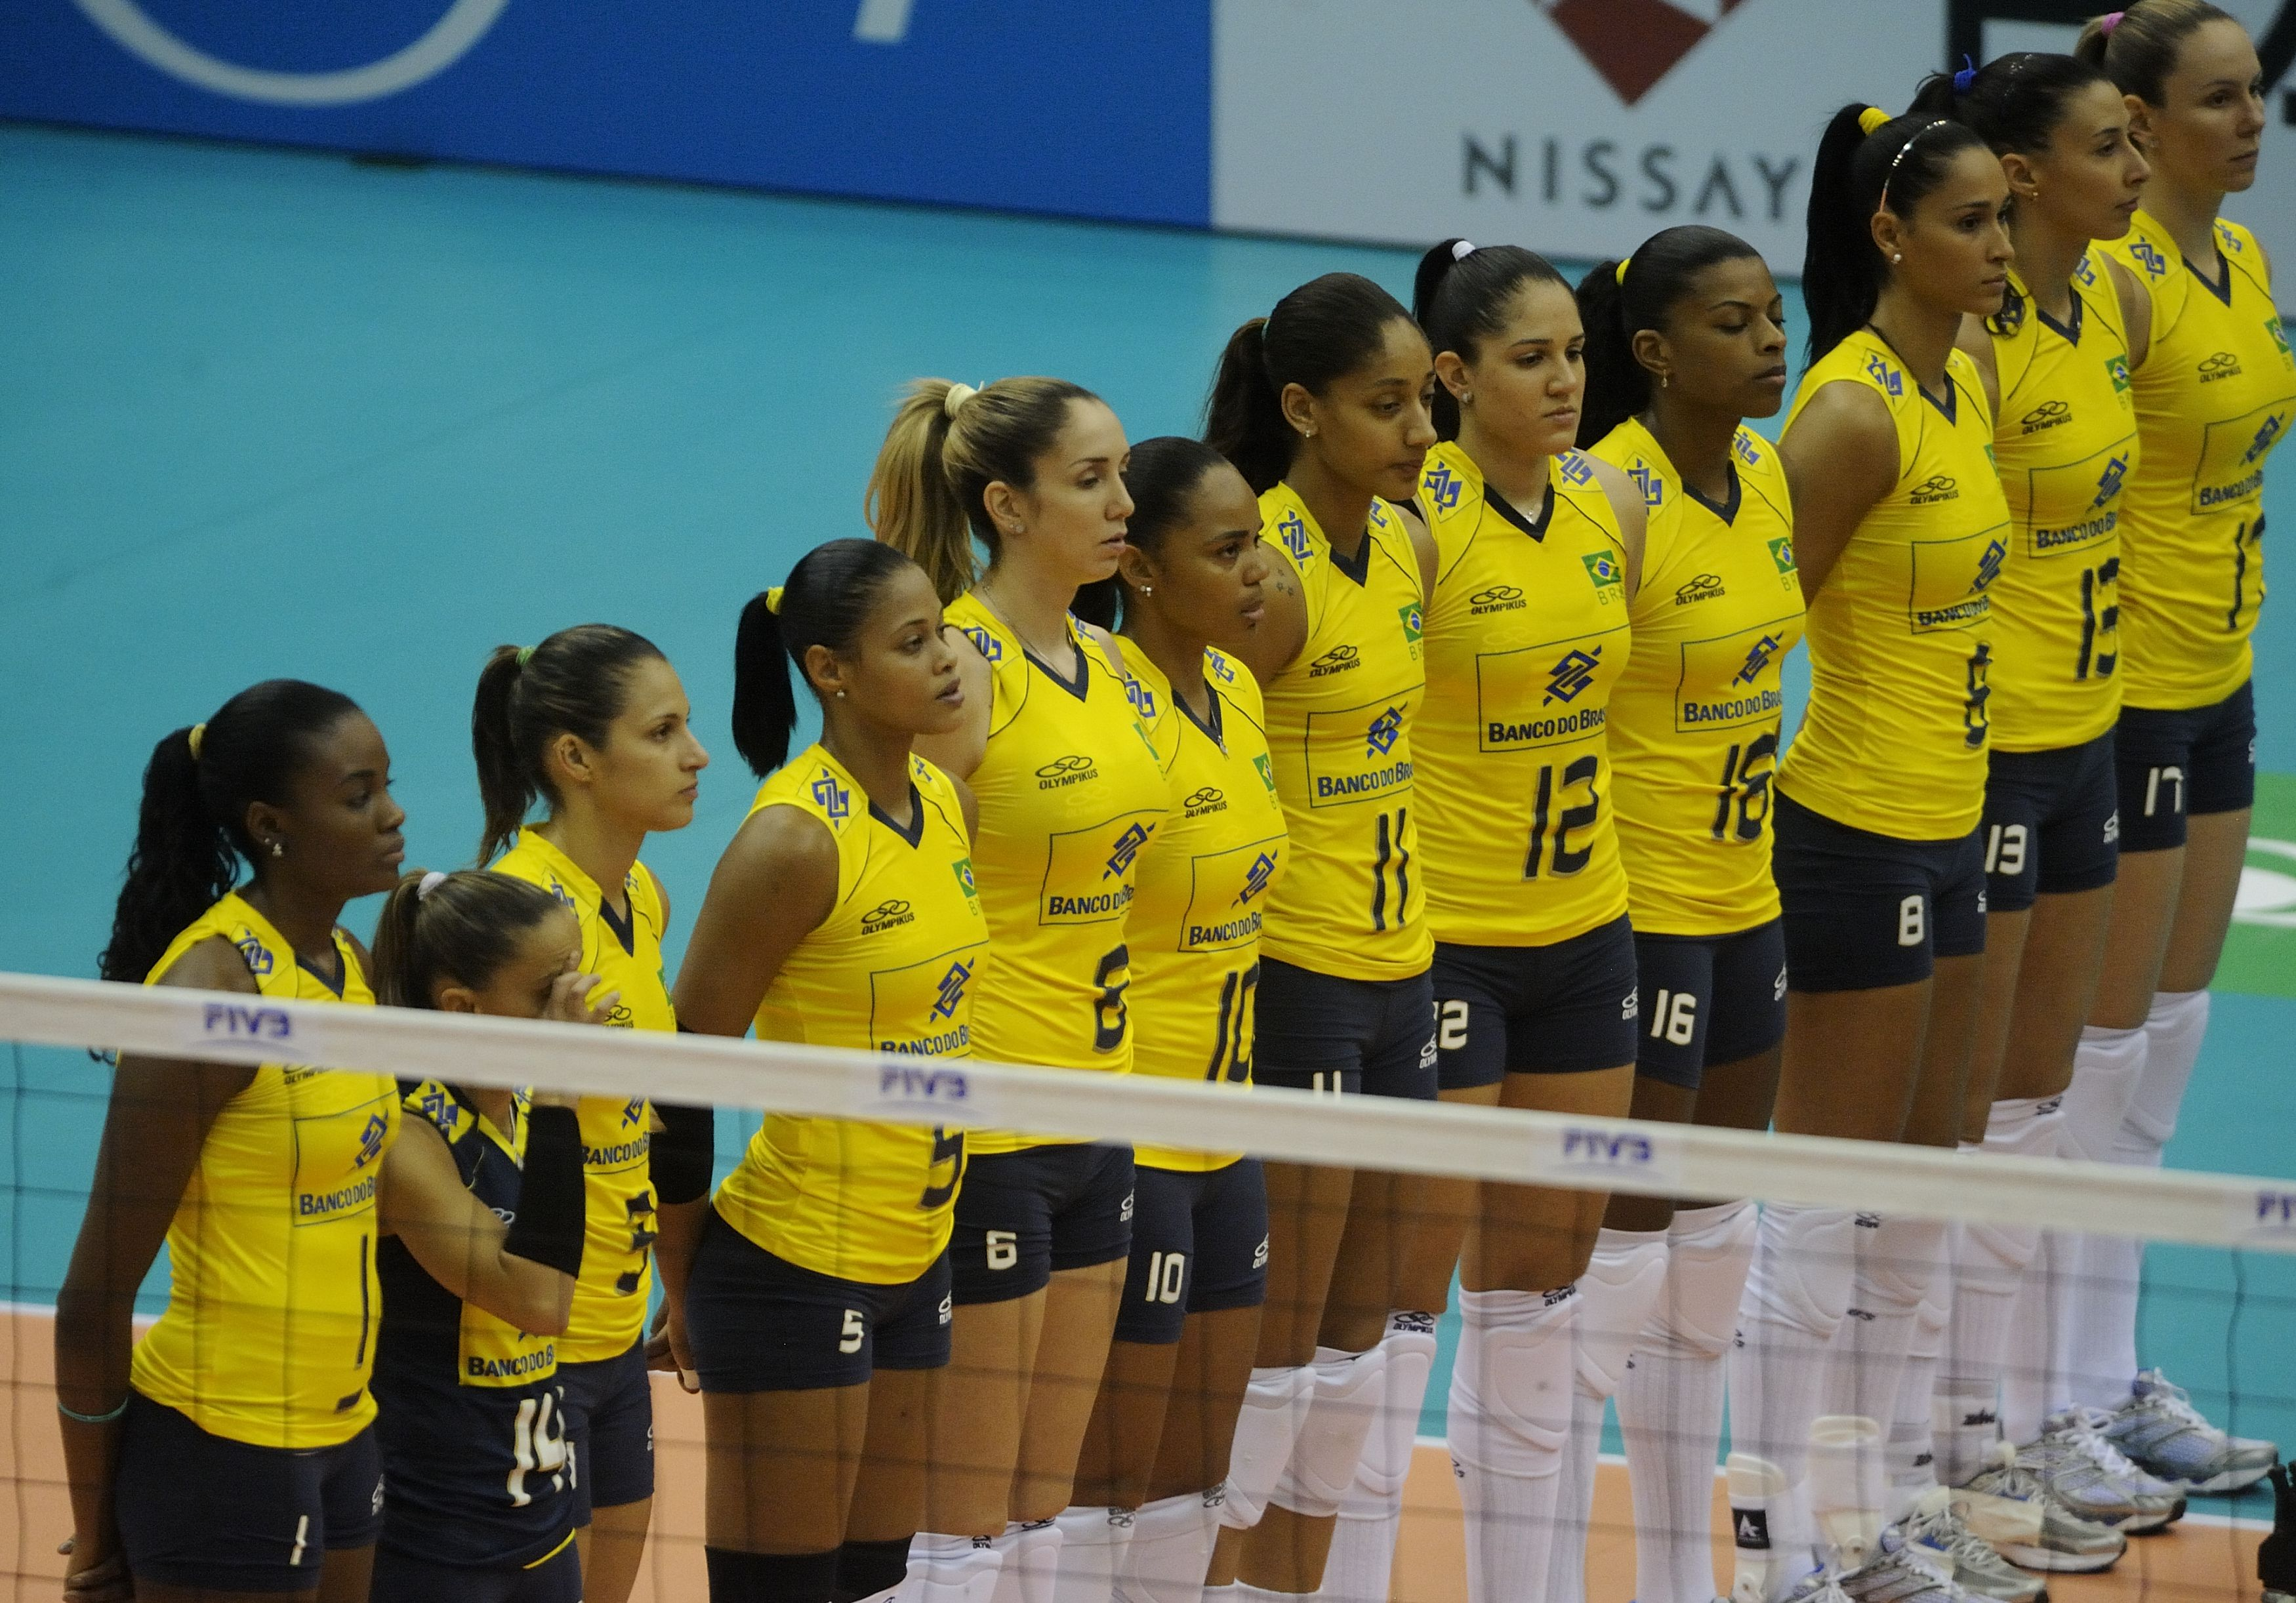 The Best Volleyball Players In The World Of 2010